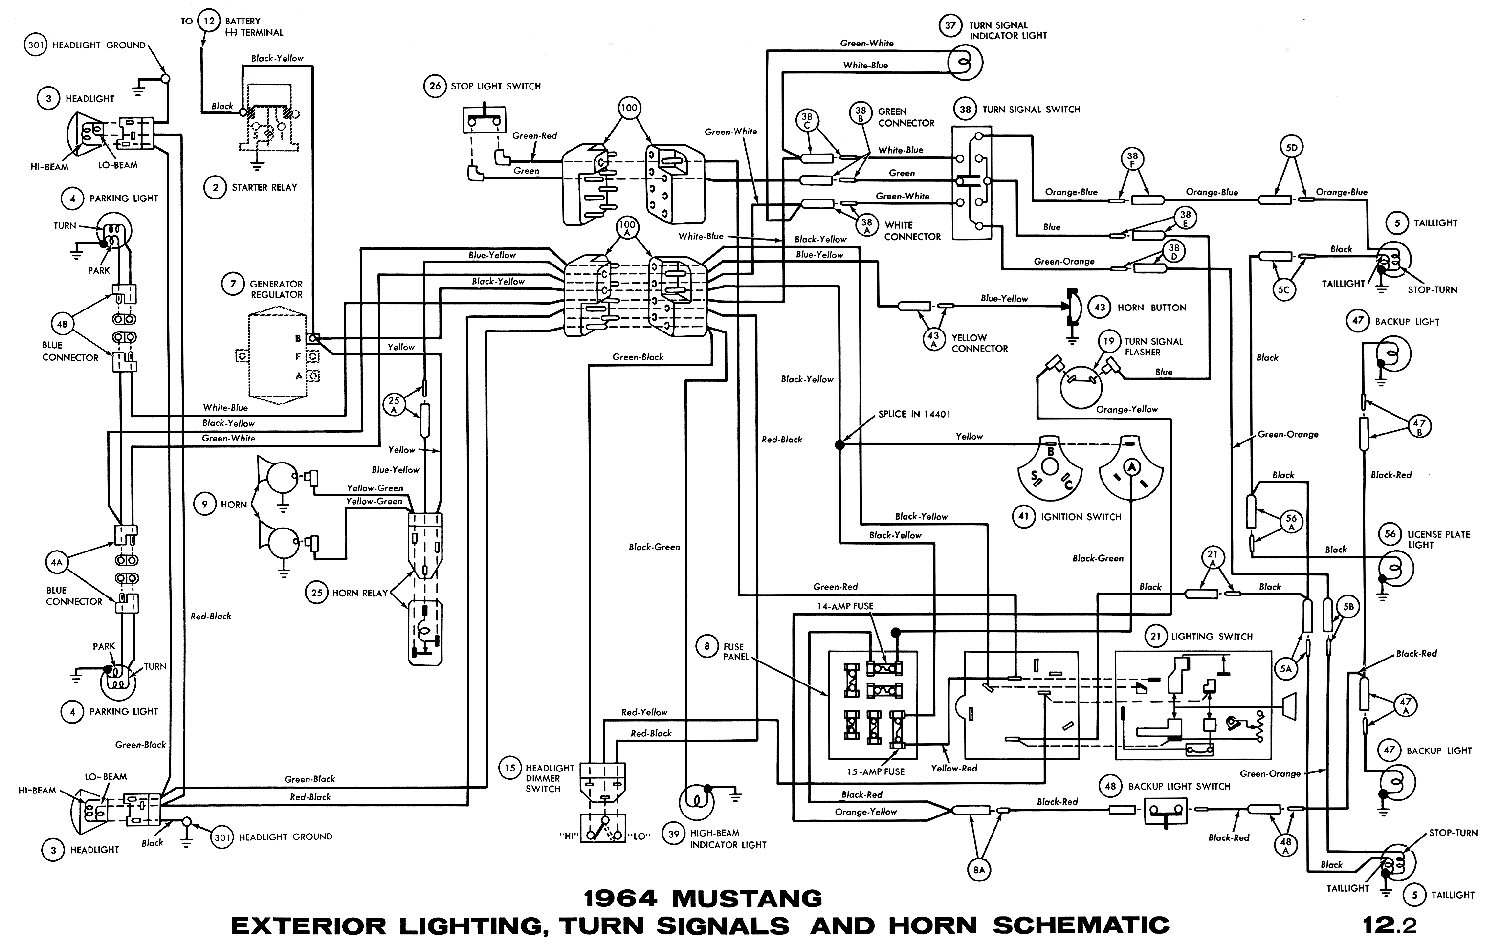 1964 Jeep Cj5 Wiring Diagram - Wiring Diagram Then Jeep Cj Ignition Switch Wiring Diagram on jeep cj ignition switch removal, jeep cj wiper switch wiring diagram, jeep wrangler yj ignition switch wiring diagram, jeep cj ignition switch assembly diagram, jeep cj engine wiring diagram, jeep zj ignition switch wiring diagram, jeep ignition switch problems,